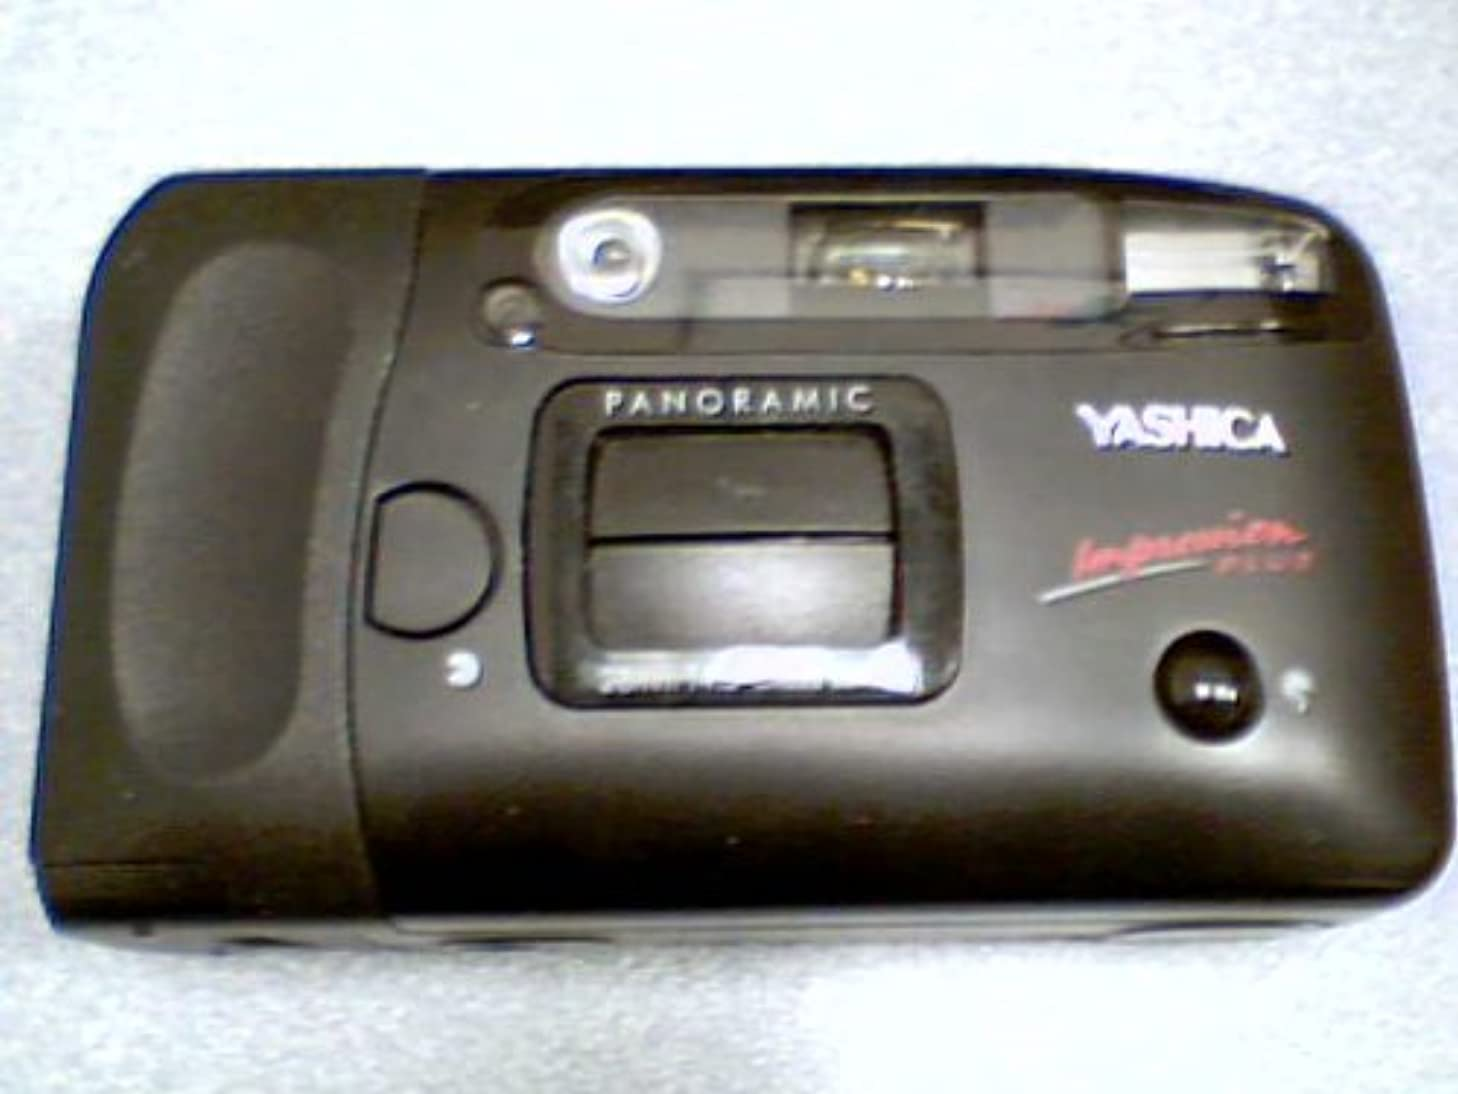 Yashica Impression Plus 35mm Film Camera w/ Panoramic Or Normal Option w/Panaramic 28mm f4.5 Glass Lens (Black Color Version)(Made in Thailand)